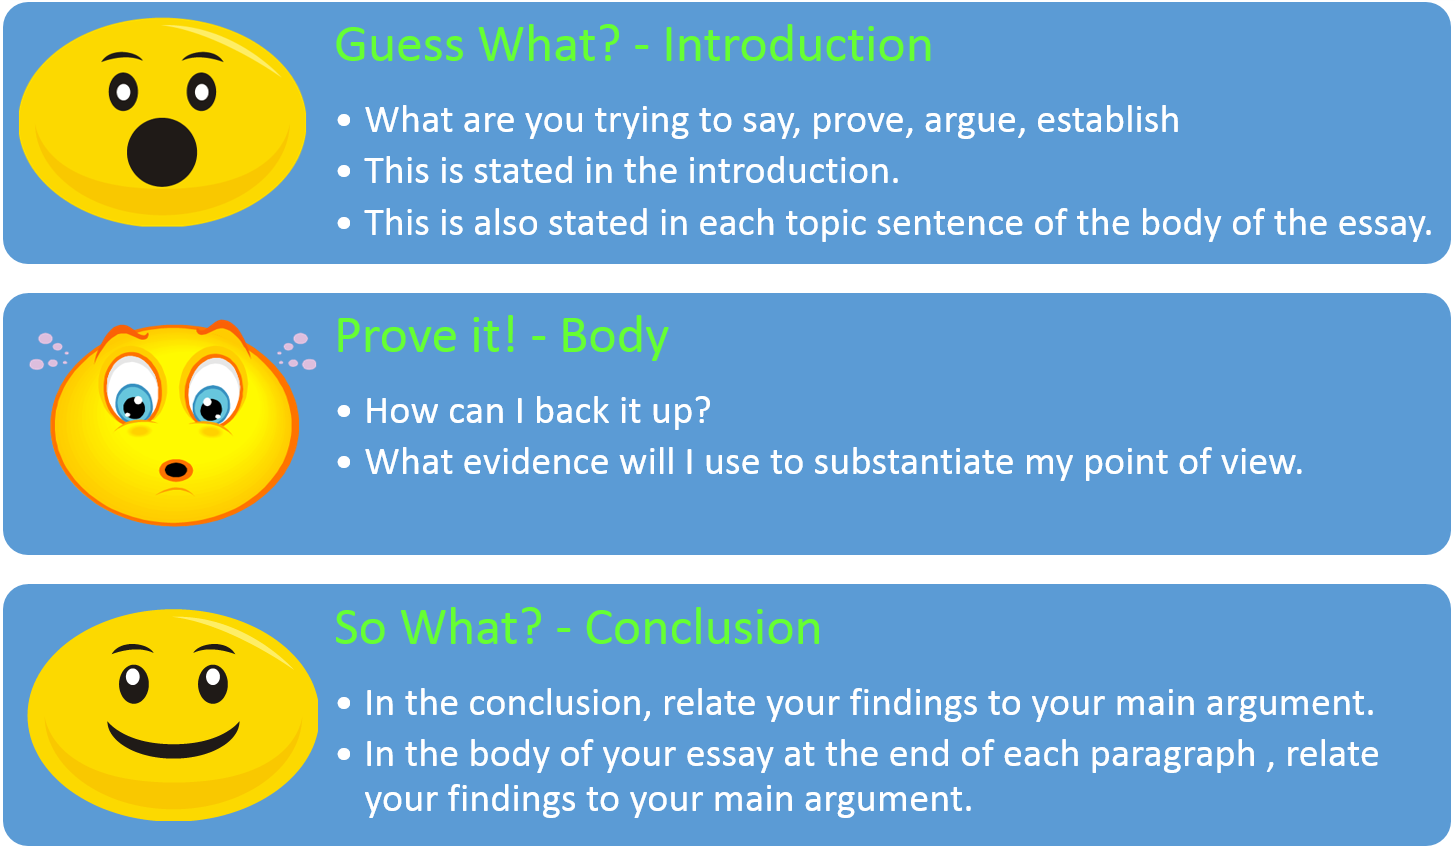 essay body parts of an essay order of body paragraphs in essay who  order of body paragraphs in essay order essay online cheap telecommunication in metricer order essay online